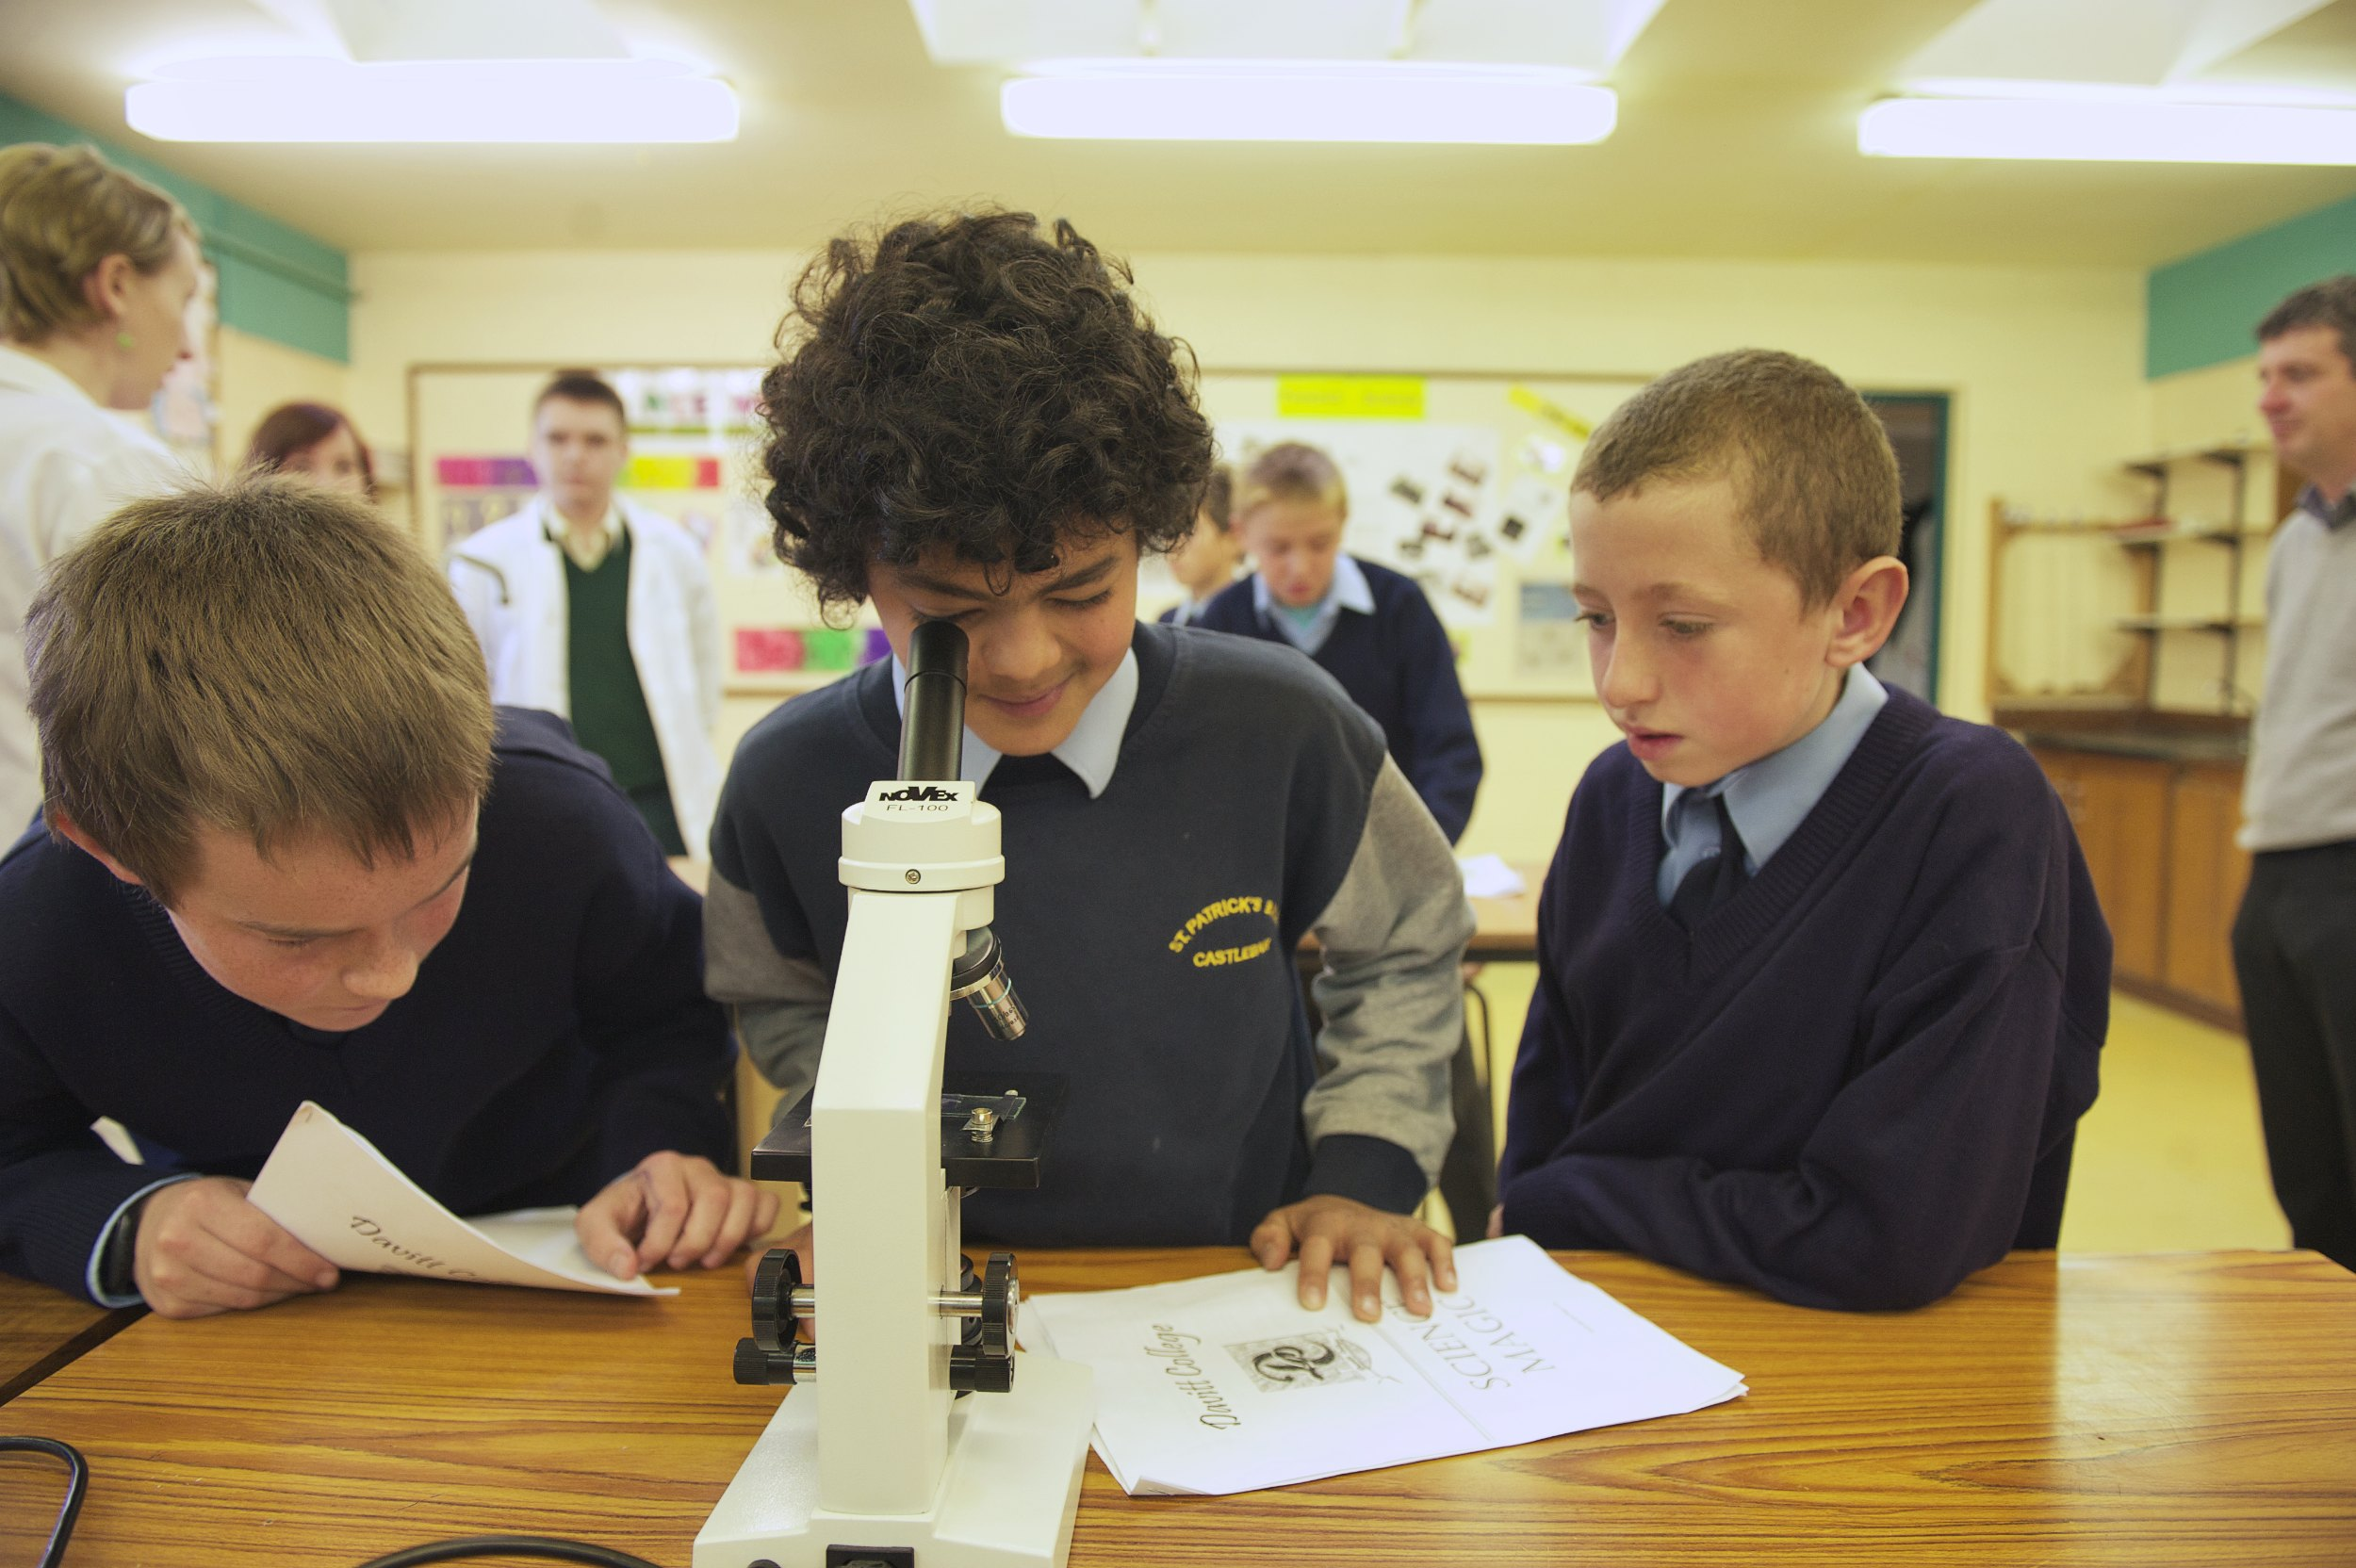 Boys from St. Patricks School, Castlebar examine plant cells during Science Week at Davitt College. This was just one in a range of Science Experiments and Computer Programming events that took place over the three day science and technology event.